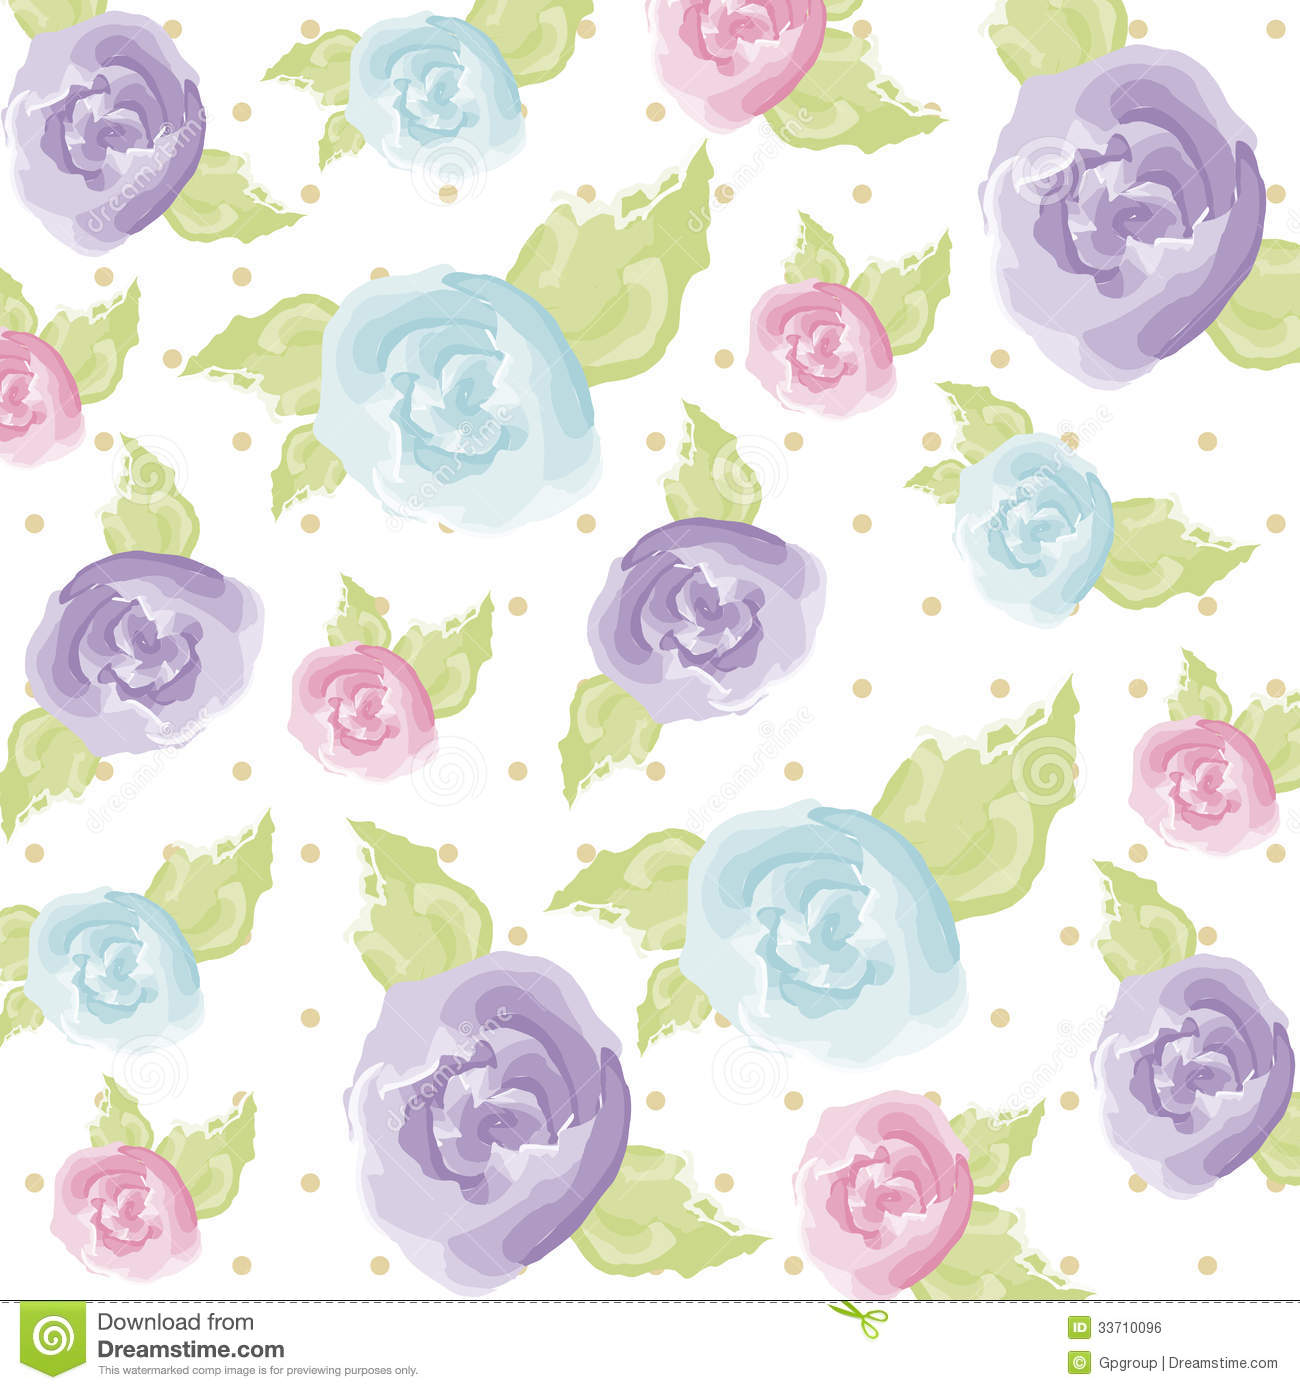 Watercolor Flower Royalty Free Stock Image - Image: 33710096